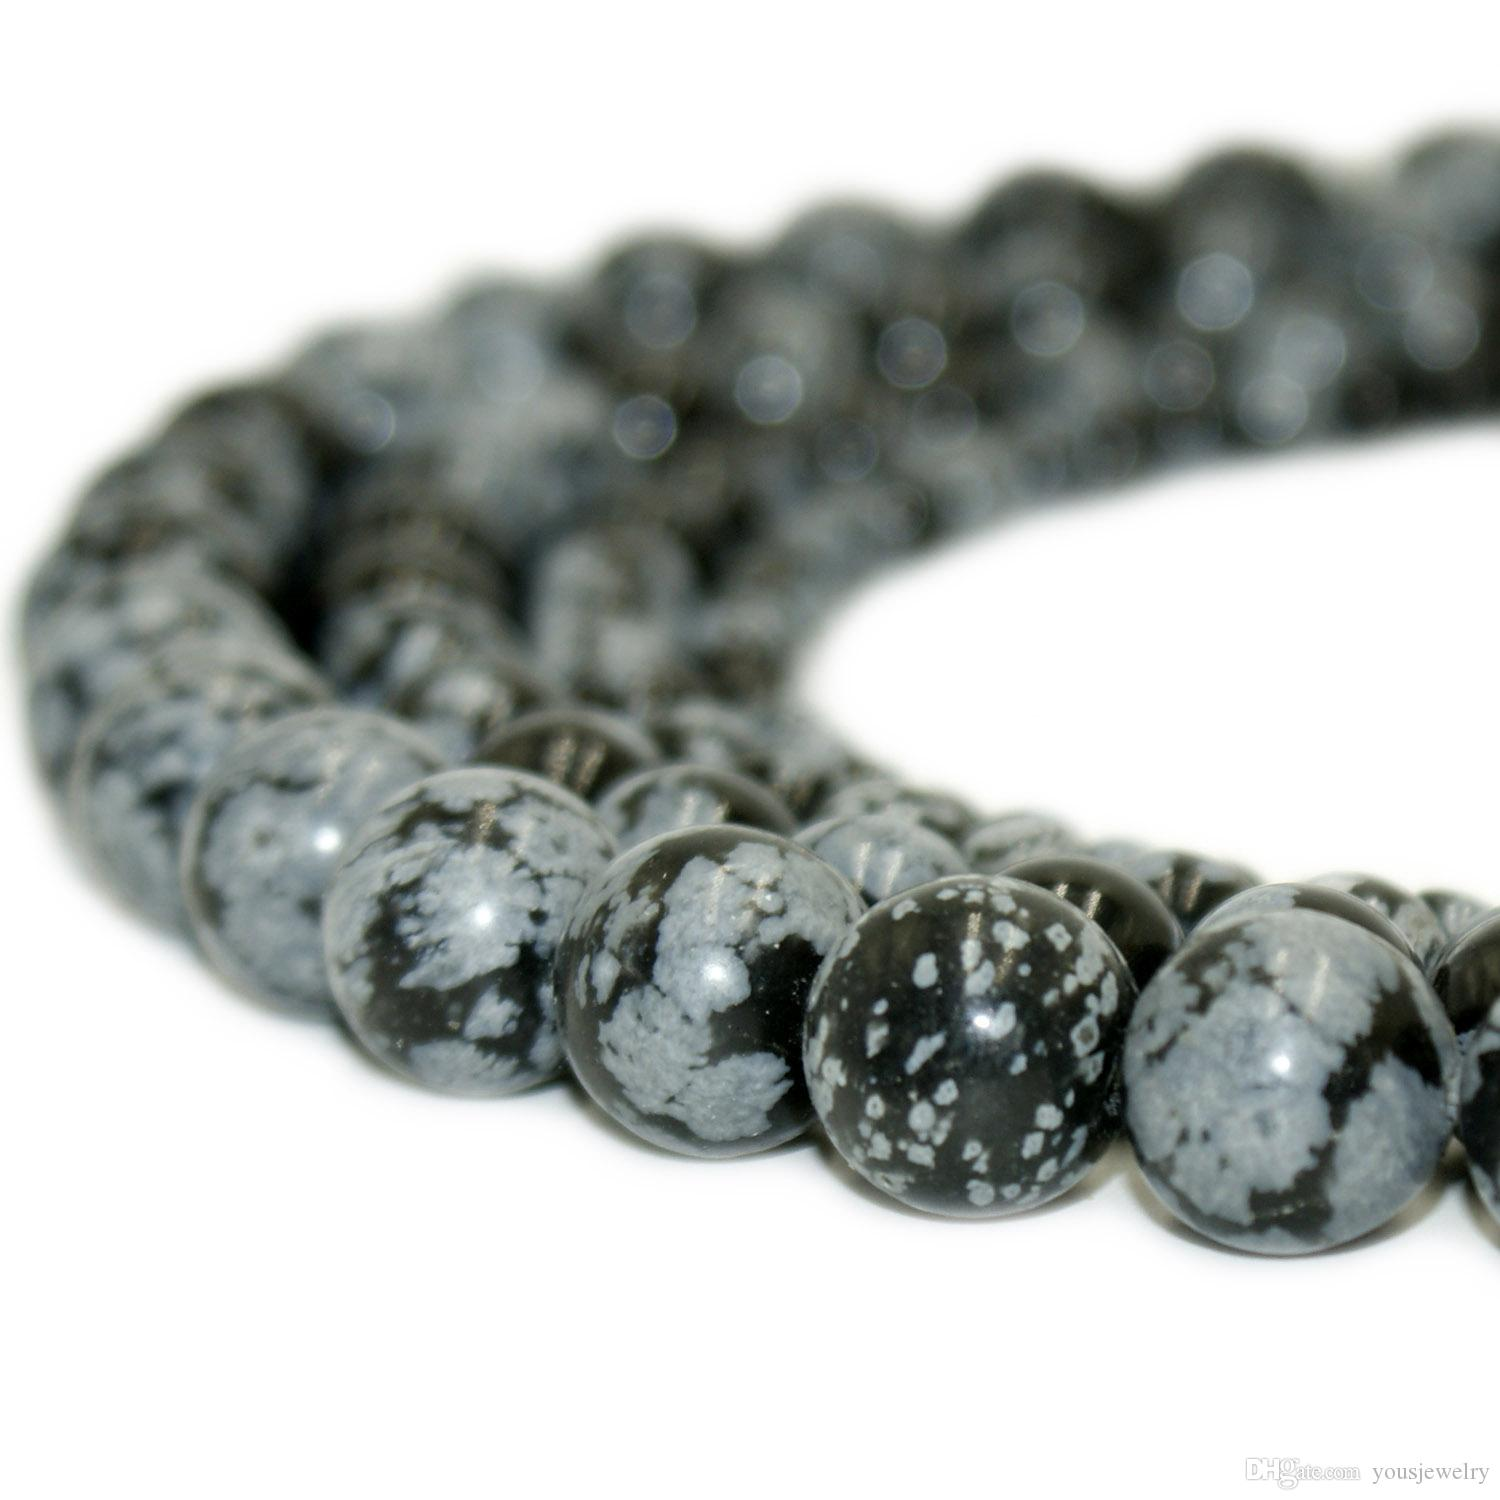 4ee2c94b24 2019 Natural Stone Snowflake Obsidian Beads Round Gemstone Loose Beads For  DIY Bracelet Jewelry Making 1 Strand 15 Inches 4 10 From Yousjewelry, $5.41  ...